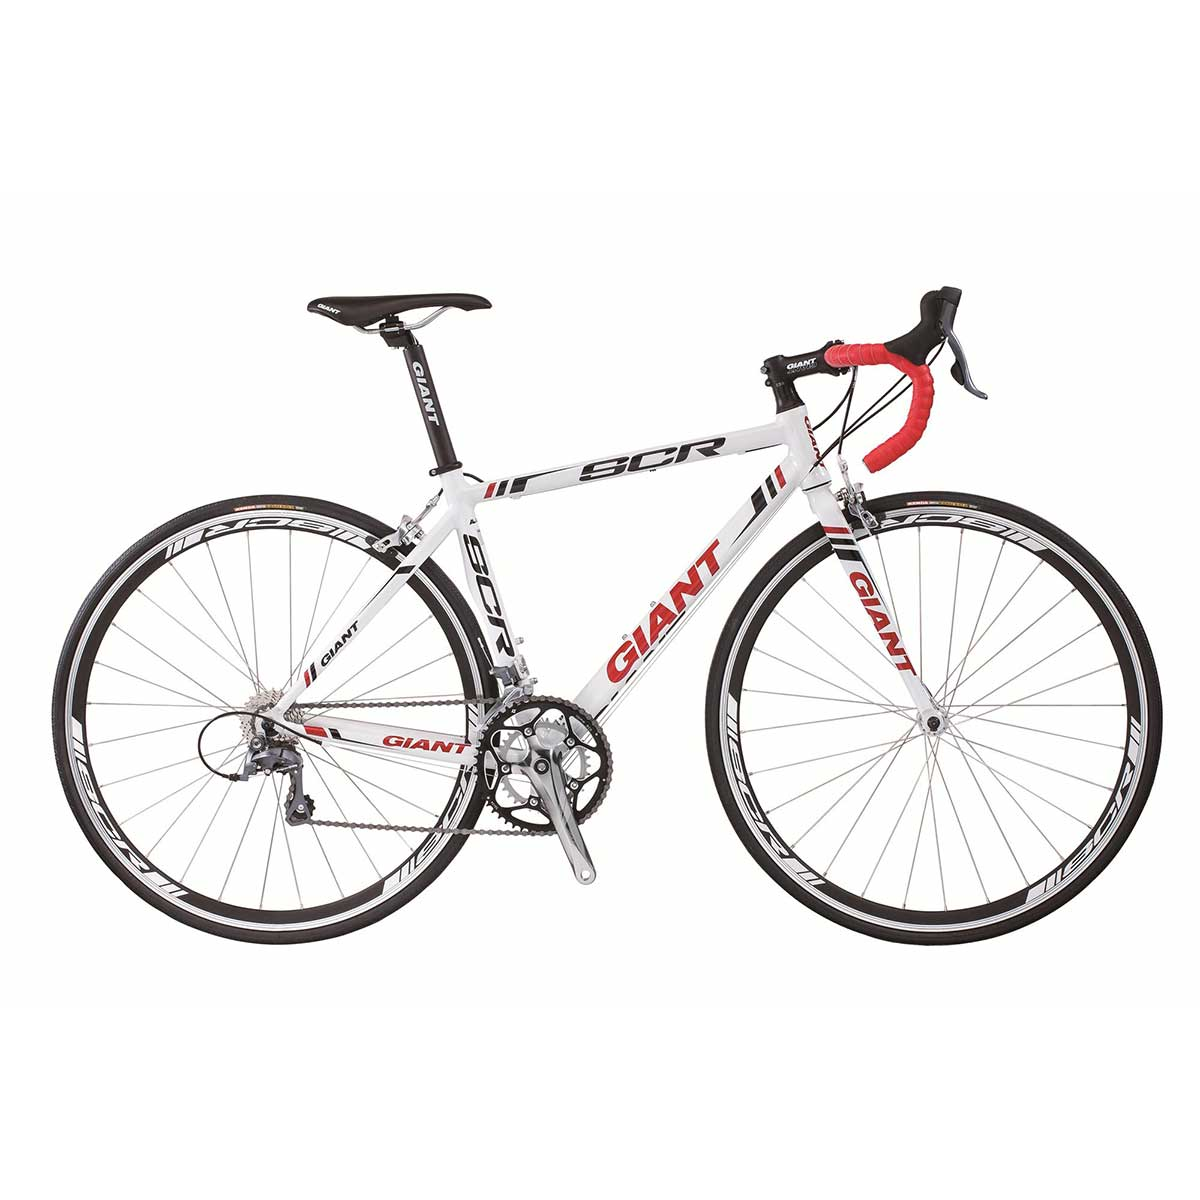 Buy Bicycle Online >> Buy Giant Scr 2 On Road Bicycle Online India Giant Bicycles